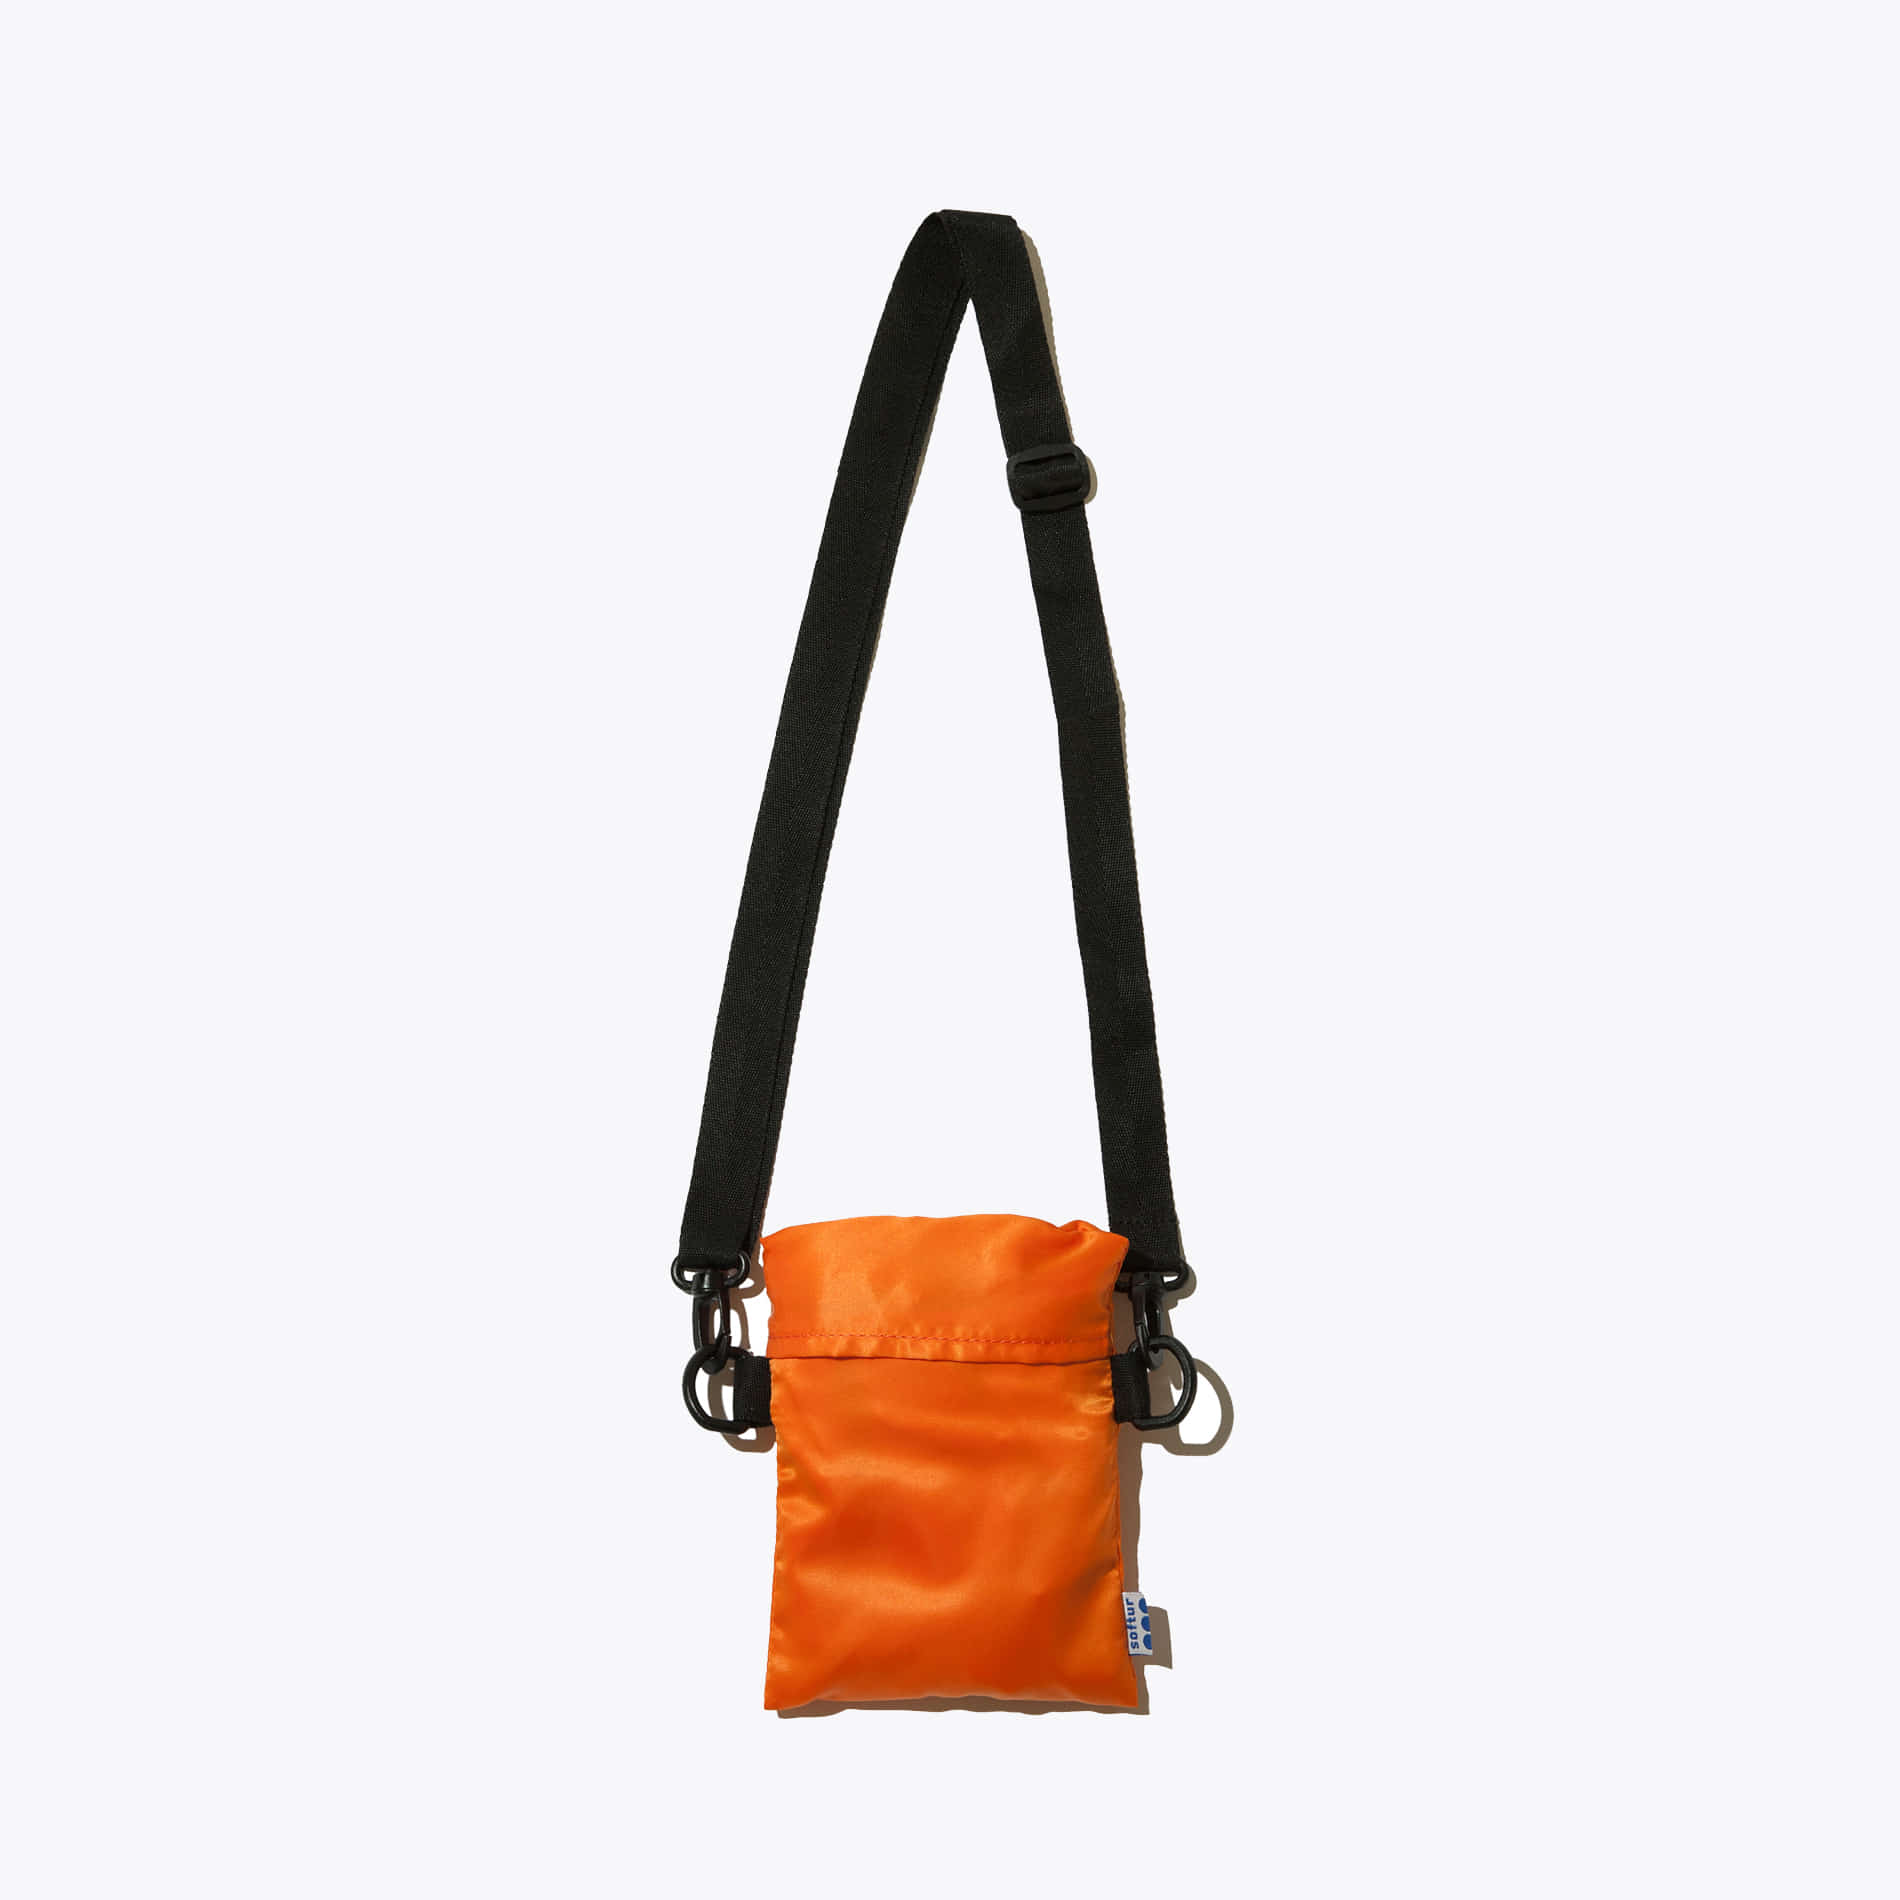 LAUNDRY TOTE BAG ORANGE